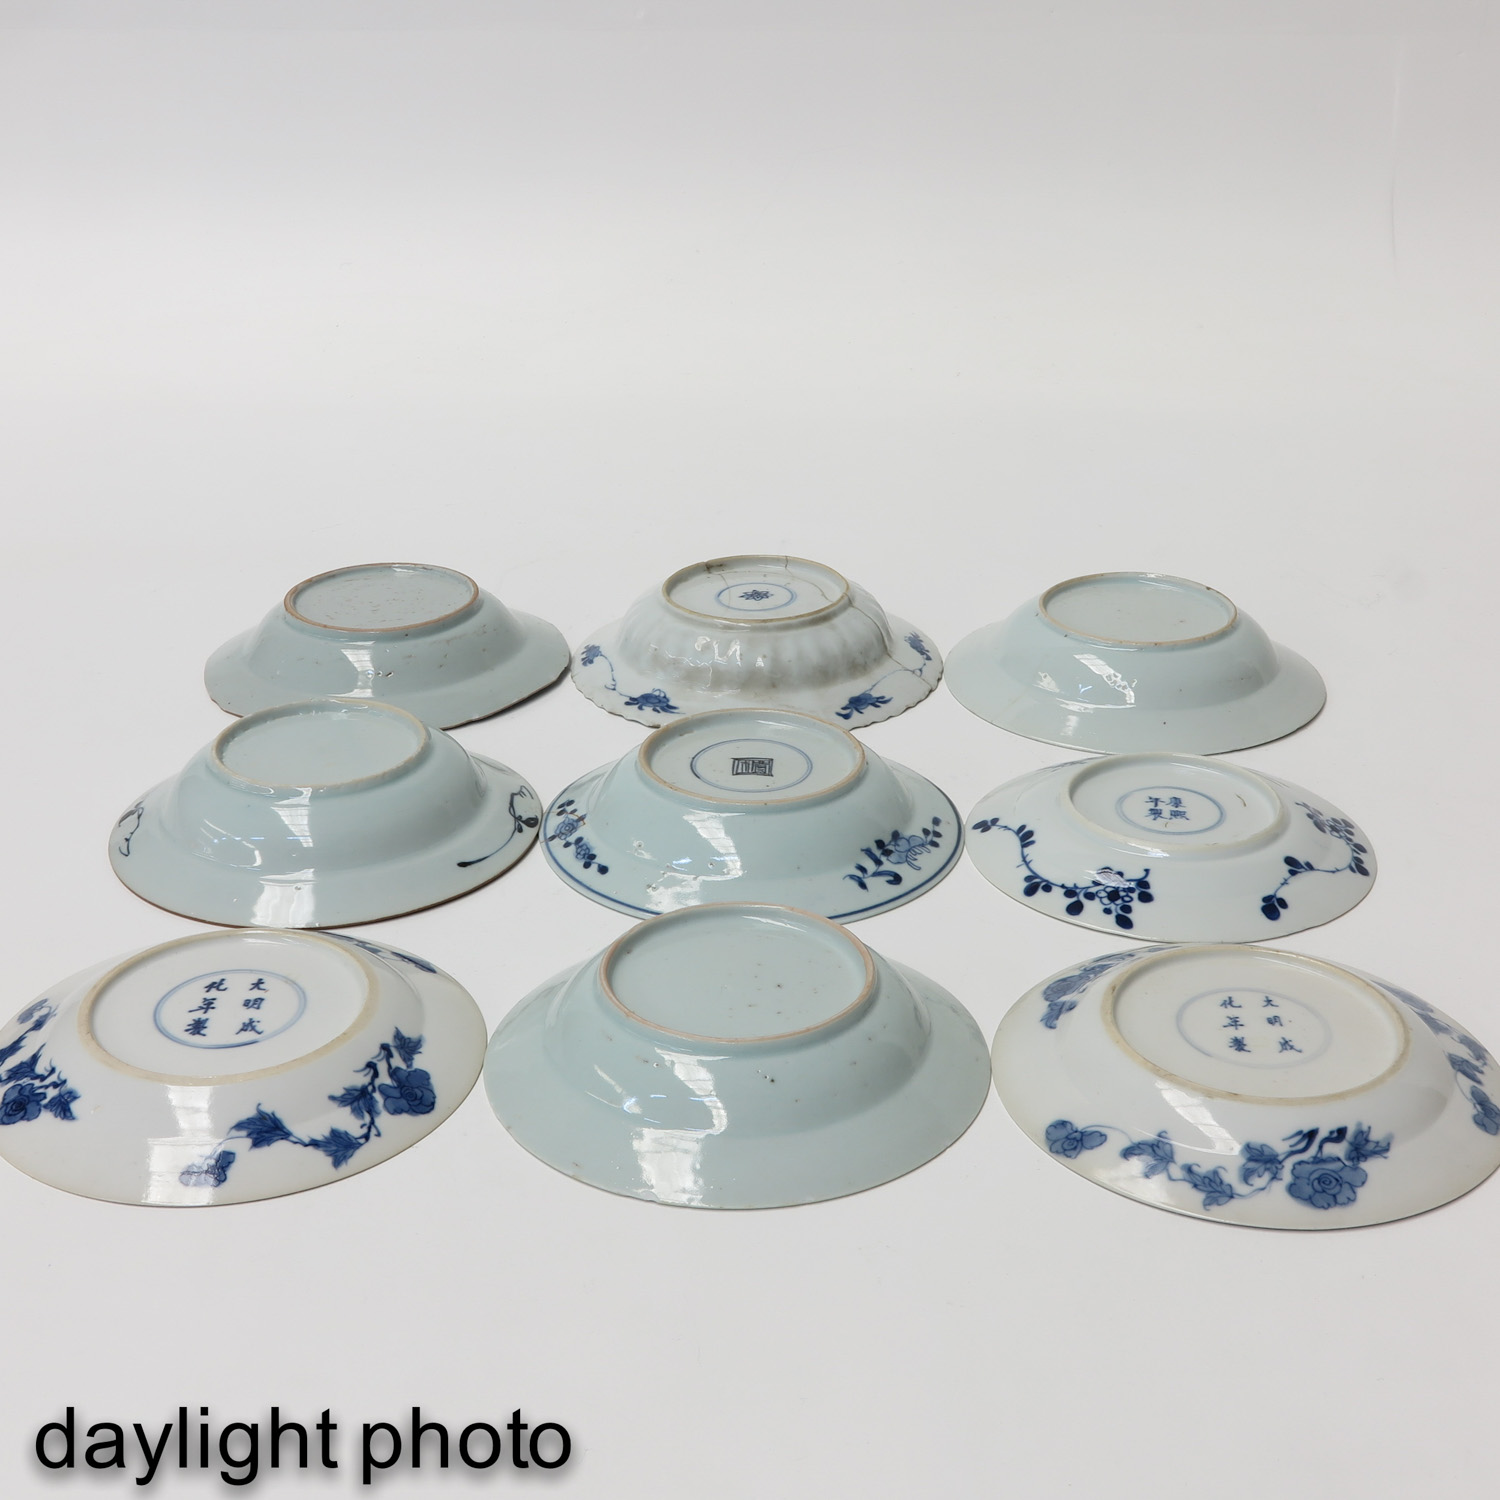 A Collection of 9 Blue and White Plates - Image 10 of 10